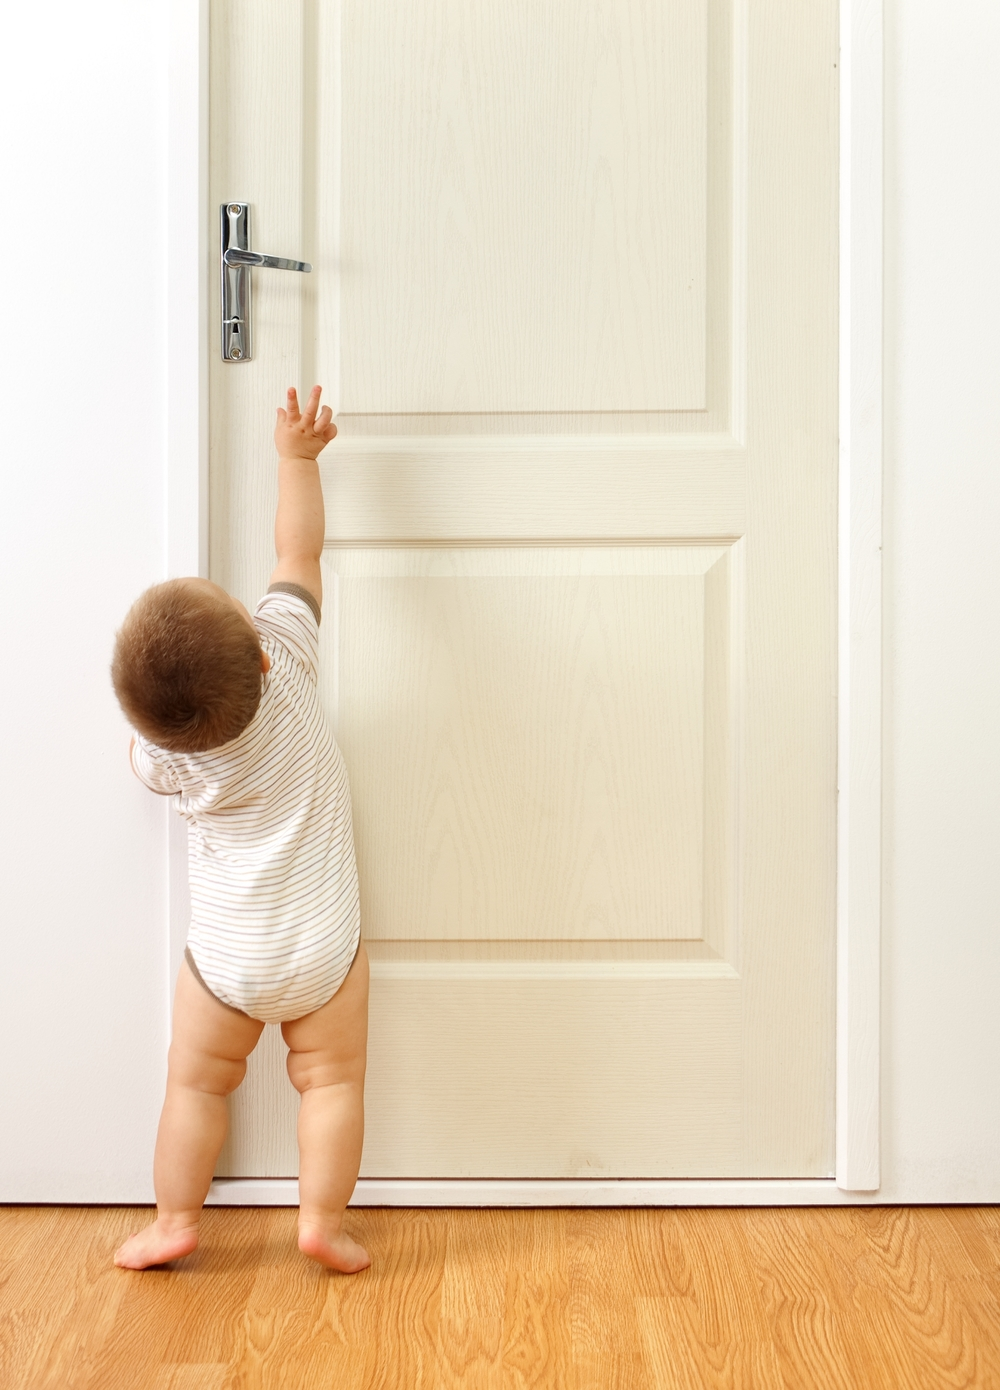 How to childproof doors — Baby Proofing Tips and Childproofing Advice